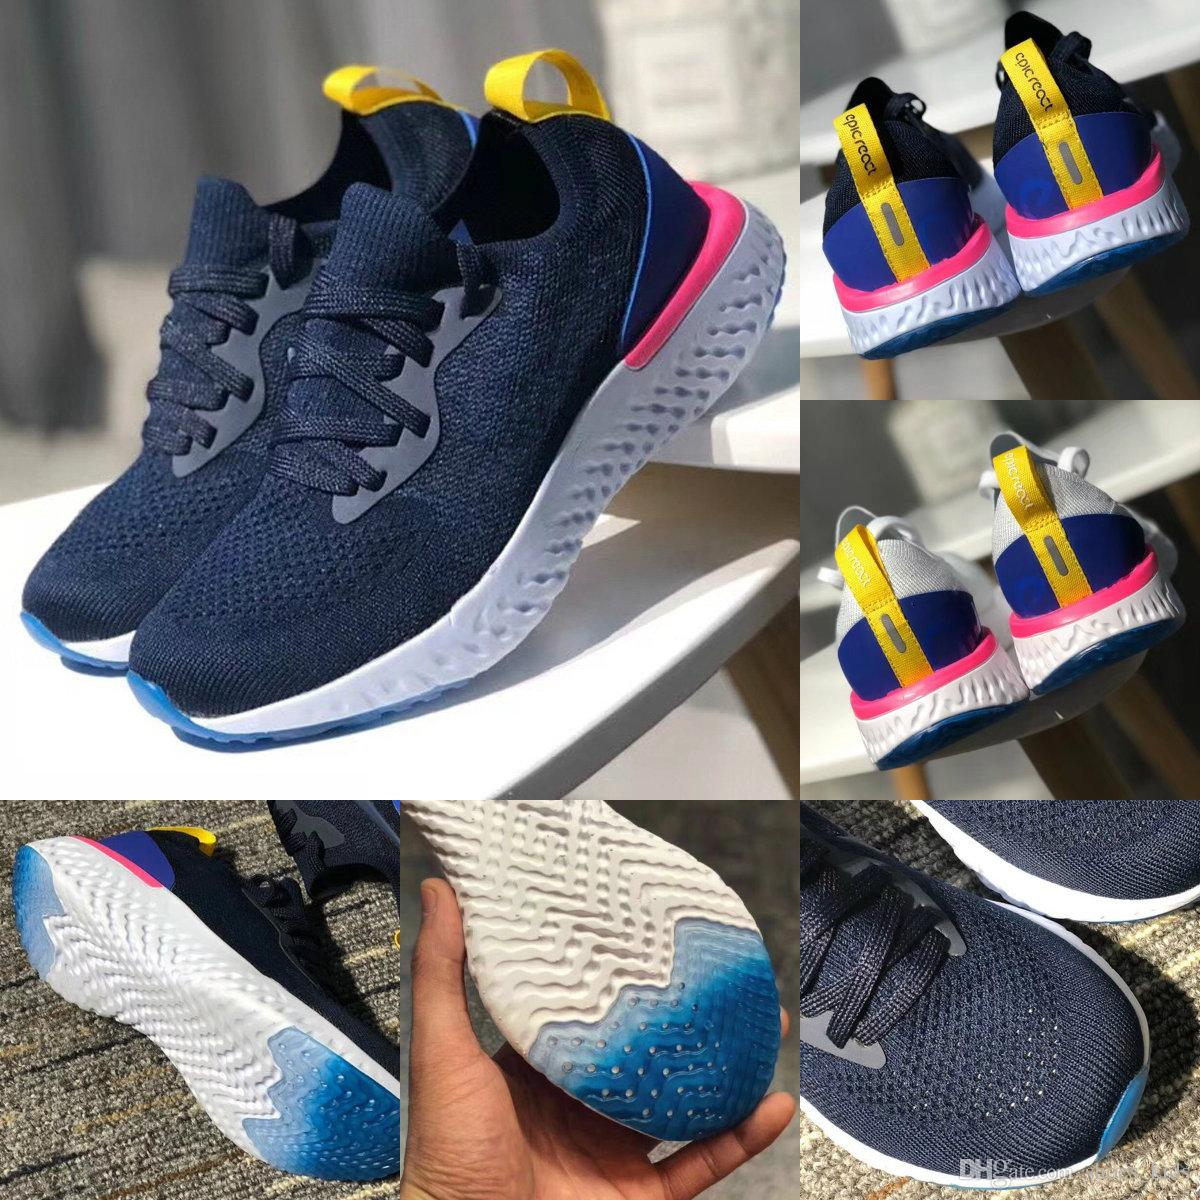 0e25cdb9c12 2018 New Kids Sneakers Epic React Running Shoes Children Athletic Shoes  Boys Girls Shoes Trainer Sports Sneaker Blue White 28 35 Toddler Tennis Shoes  Sports ...